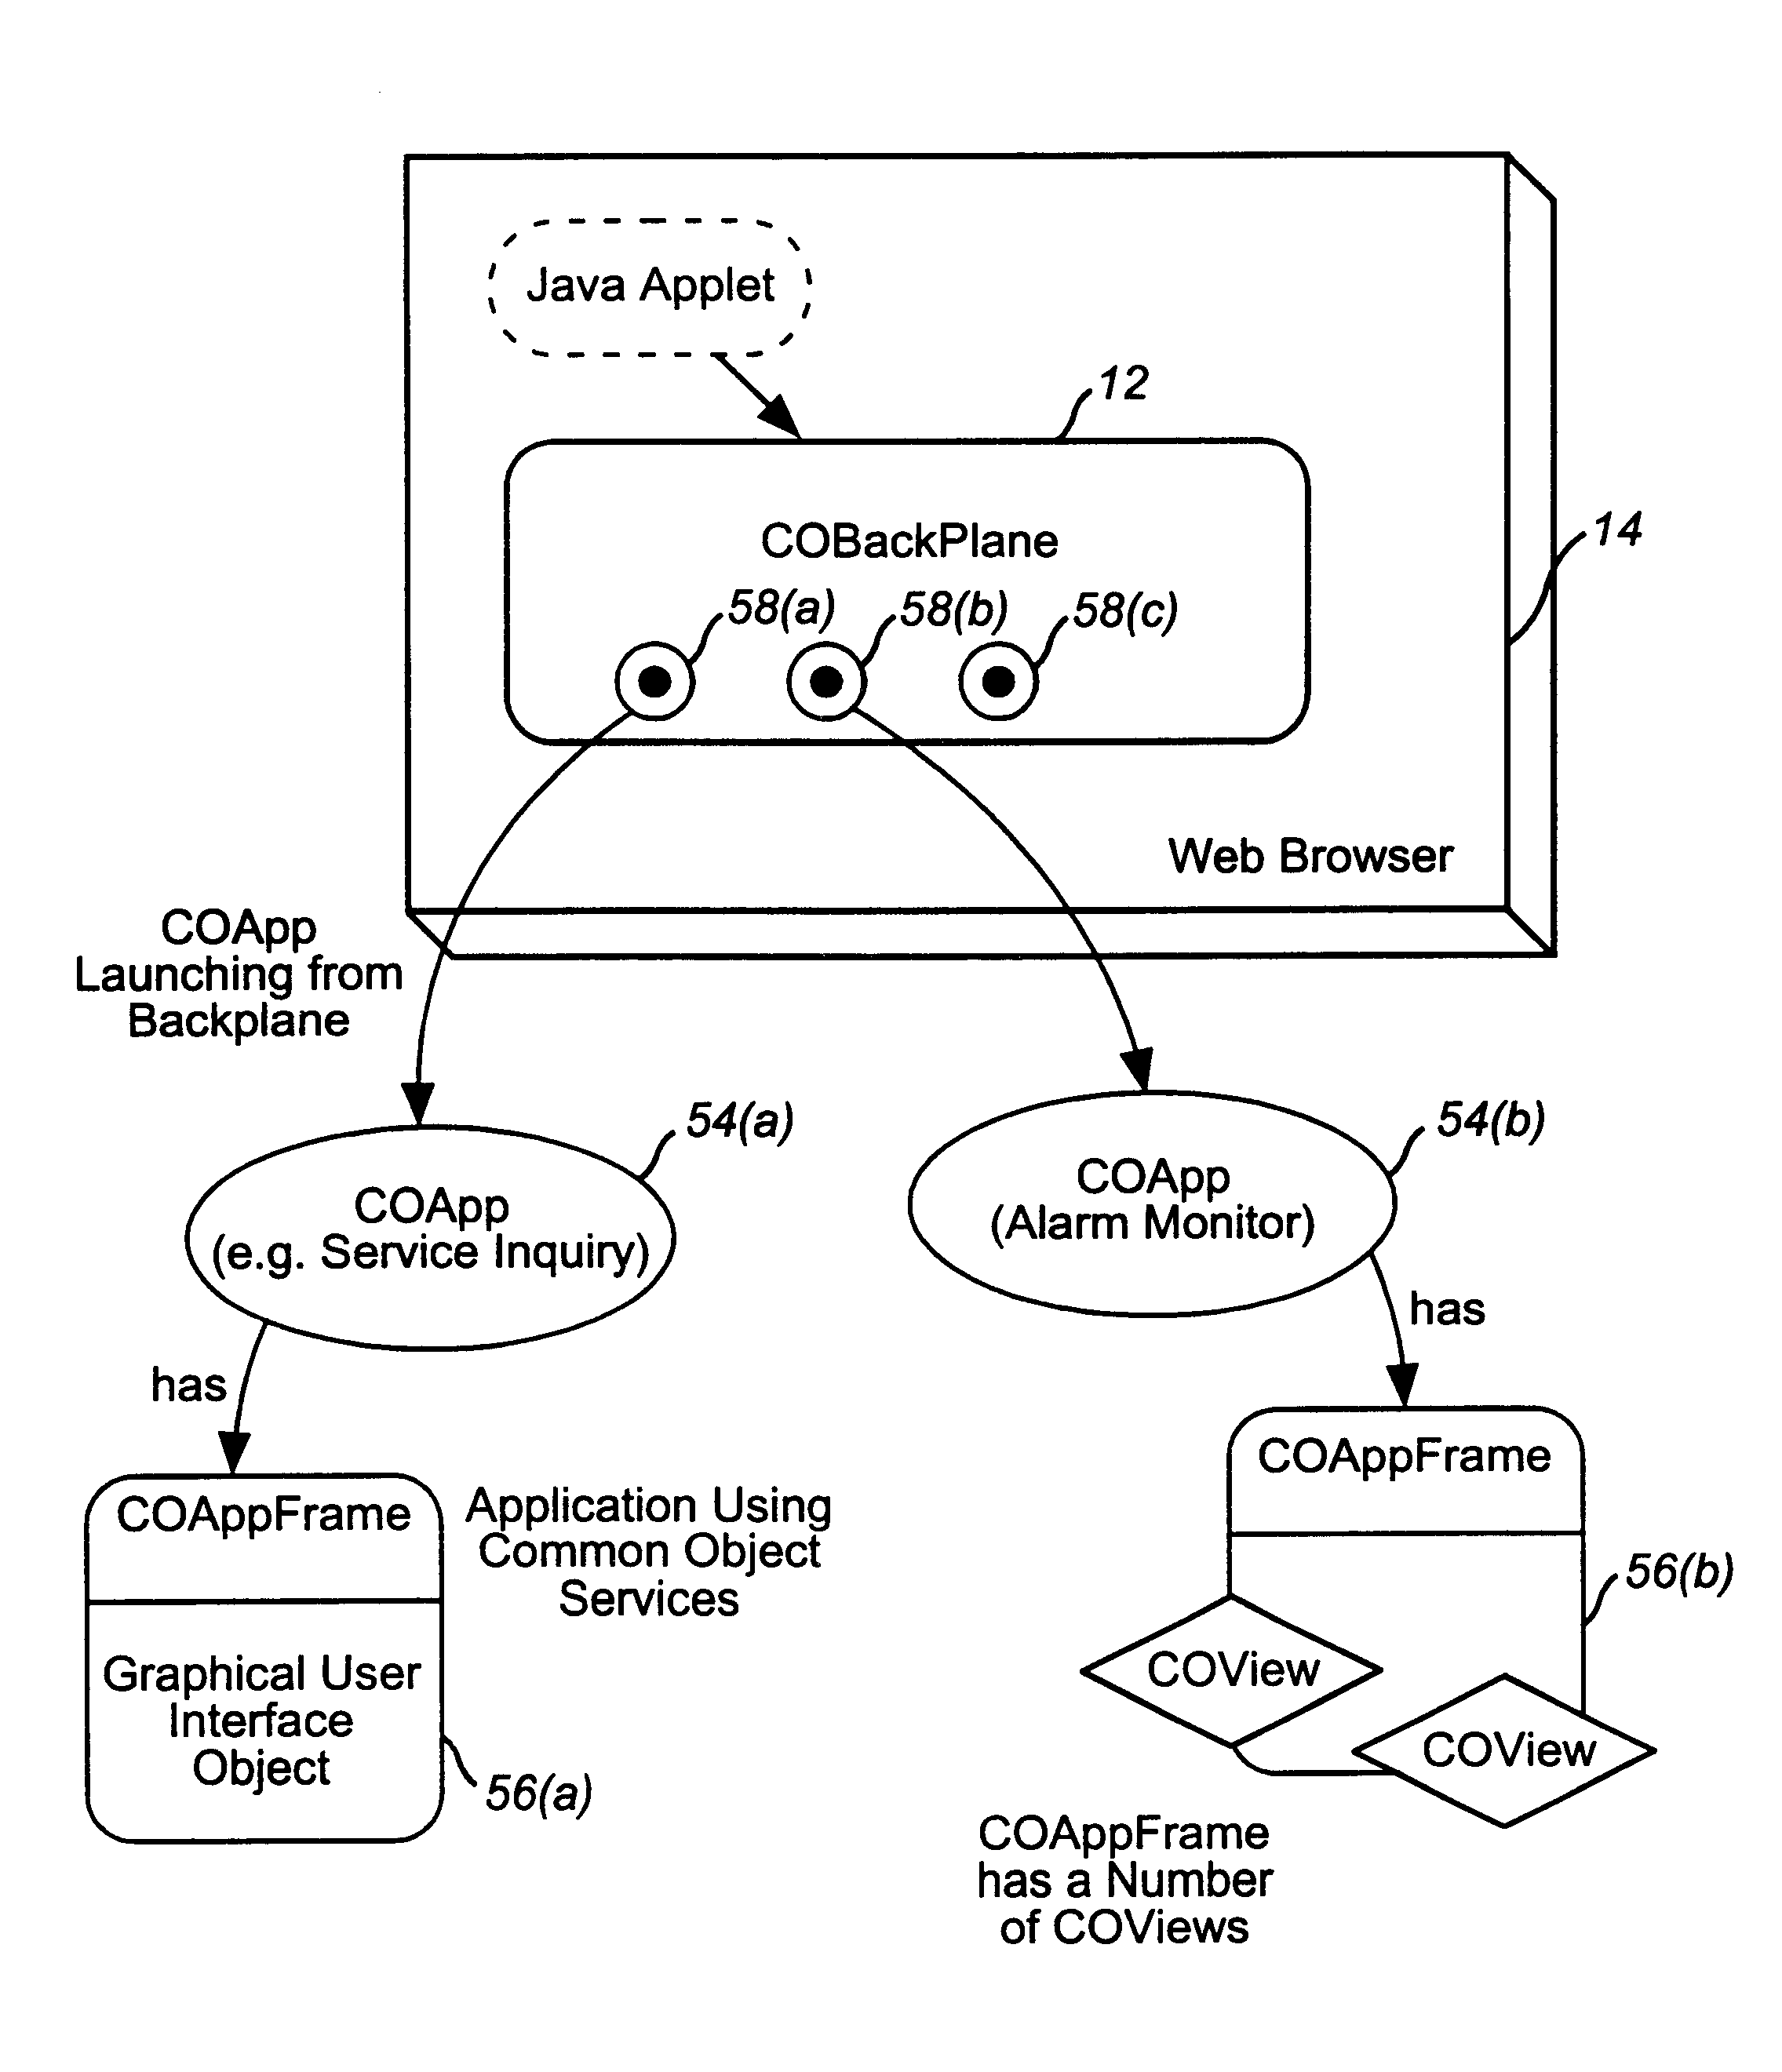 Us6606708b1 secure server architecture for web based data us6606708b1 secure server architecture for web based data management google patents cheapraybanclubmaster Choice Image